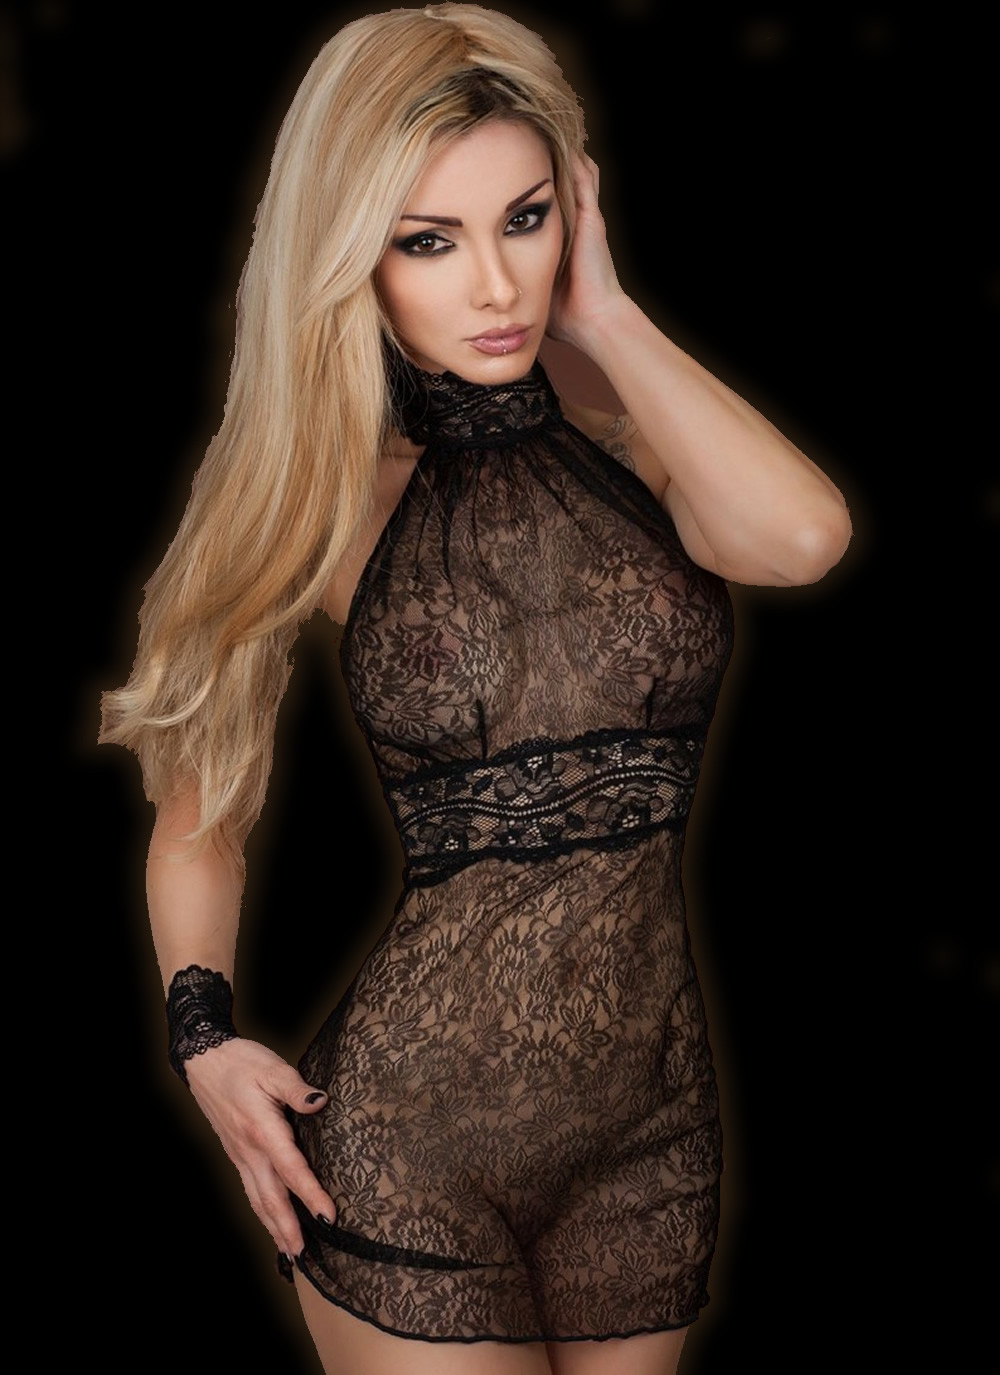 6bedd2f329d71 Sailing Reglisse Nuisette Babydoll by Luxxa Lingerie | Eye Kandee ...